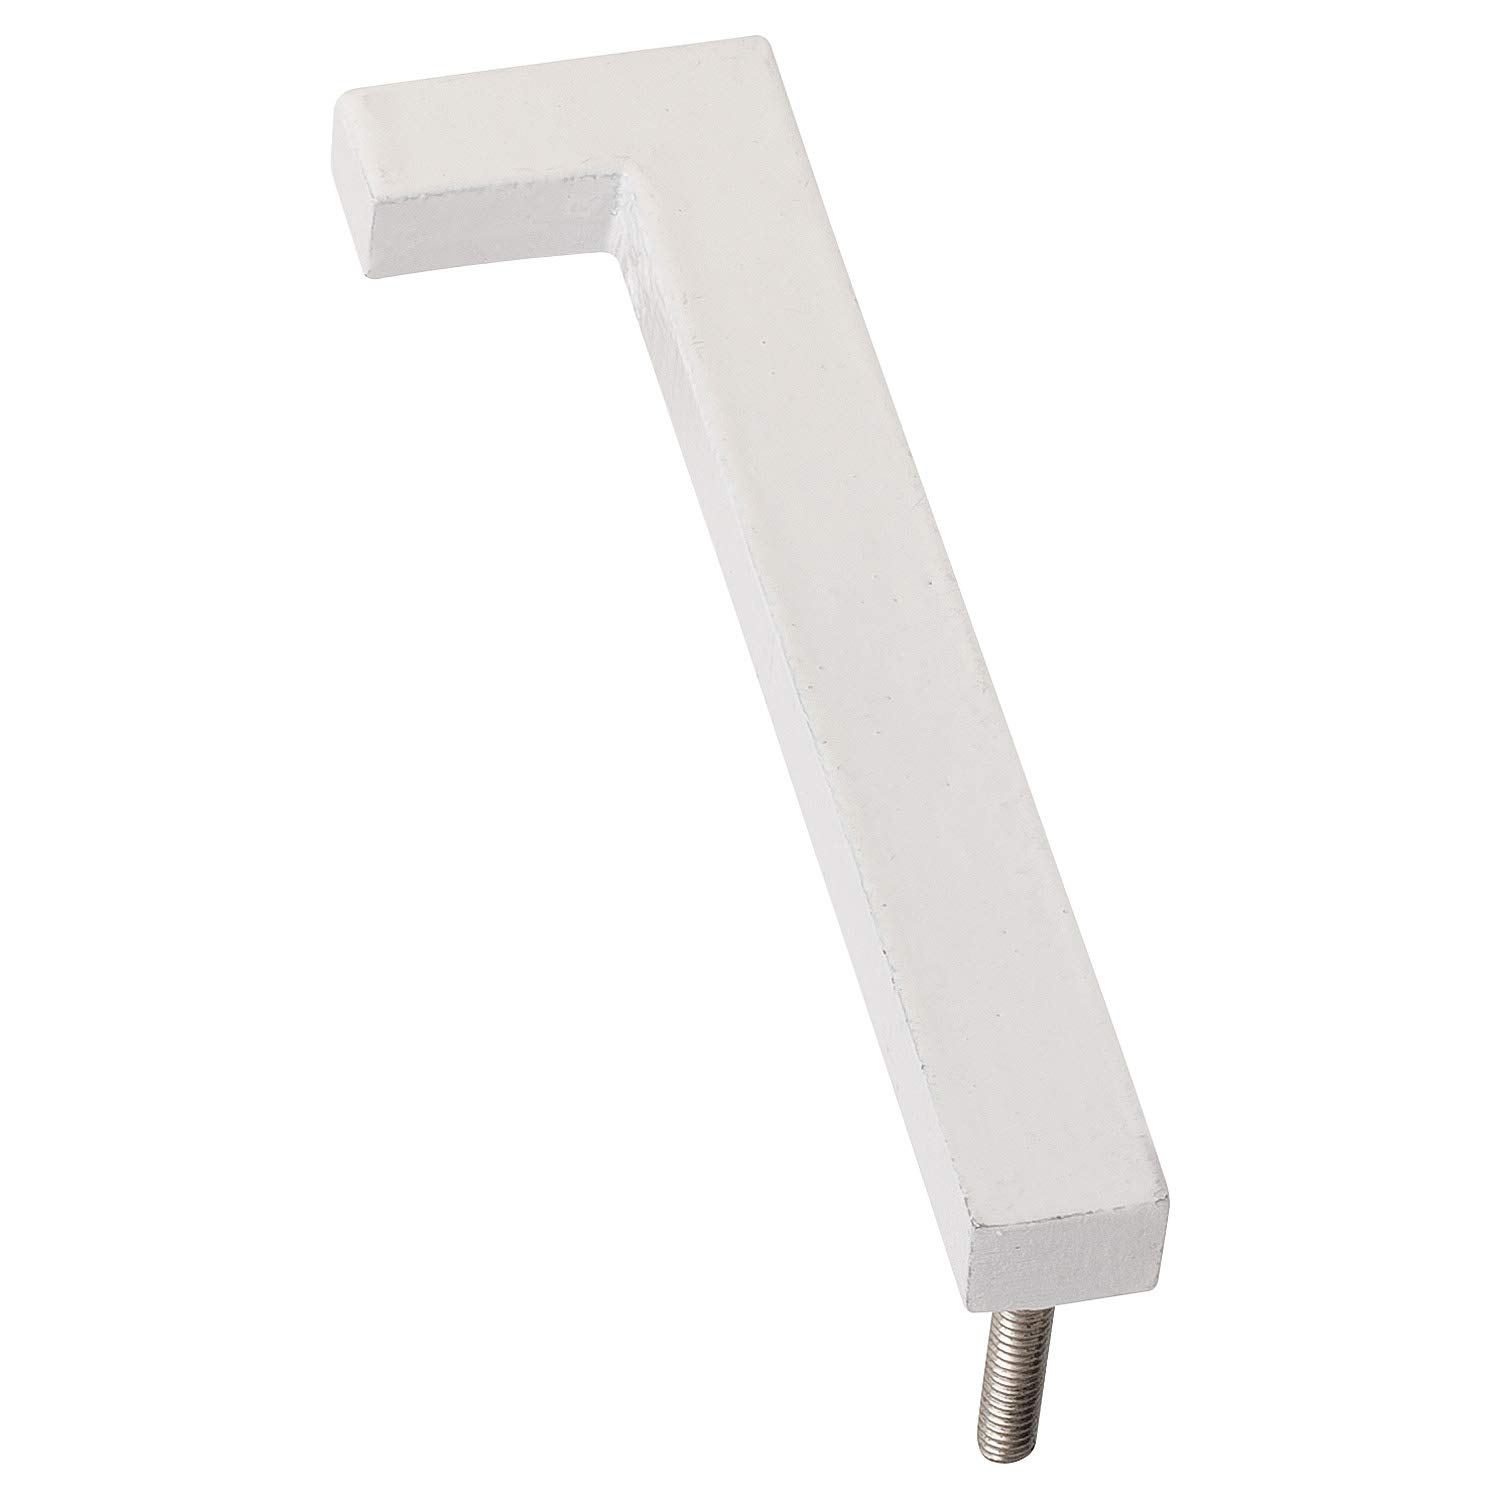 Montague Metal Products MHN-06-1-F-WE1 Floating House Number 6 x 1.75 x 0.31 White